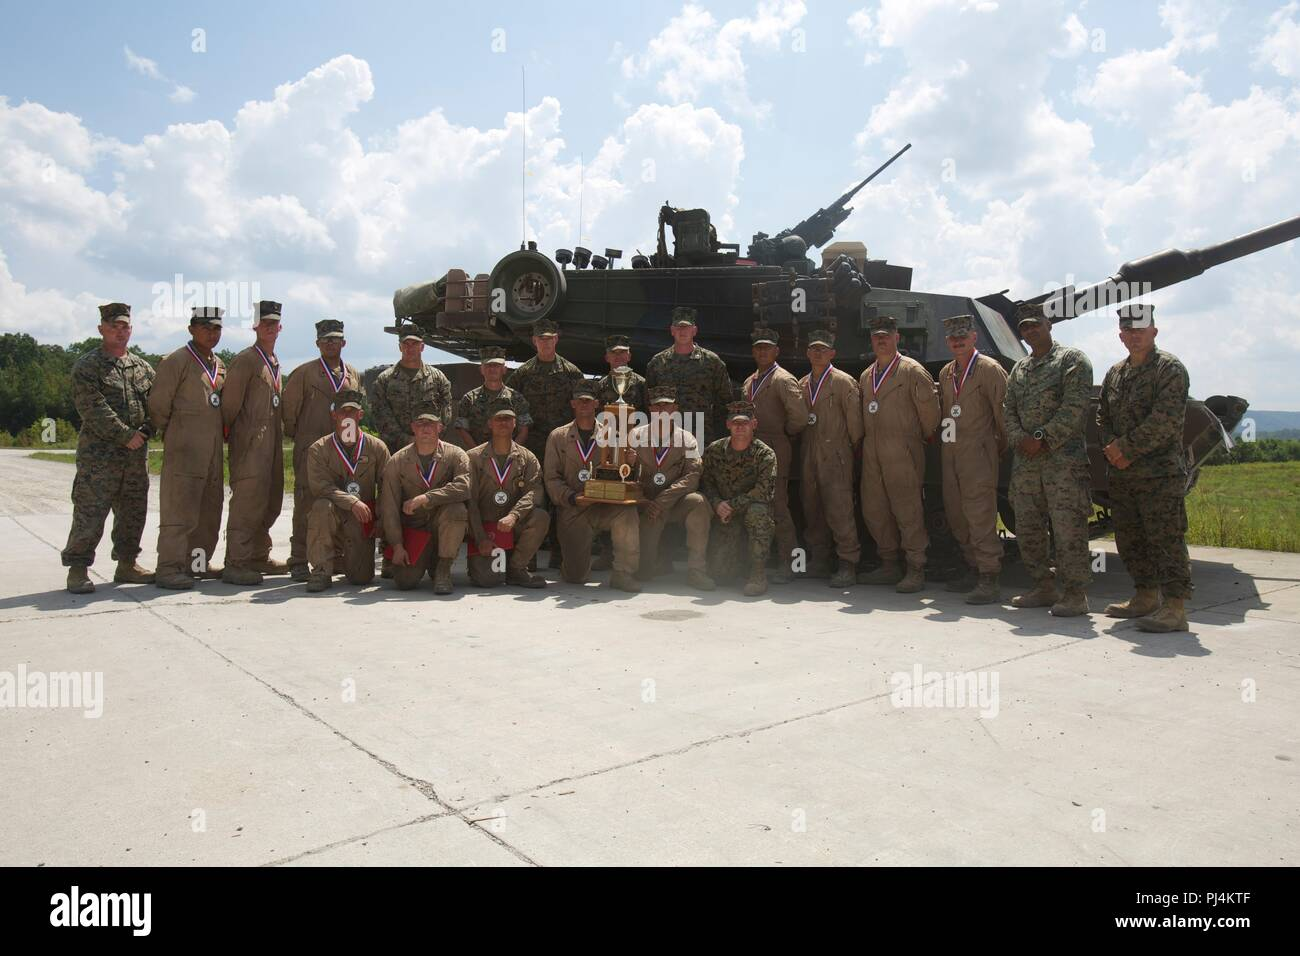 Lt. Gen. Brian D. Beaudreault, the deputy commandant of plans, policies, and operations, poses for a photo with the crews from 1st, 2nd, and 4th Tank Battalion after the awards ceremony at the 15th annual Tiger Competition awards ceremony at Wilcox Range, Fort Knox, Ky., Aug. 28, 2018. (U.S Marine Corps photo by Cpl. Dante J. Fries) Stock Photo